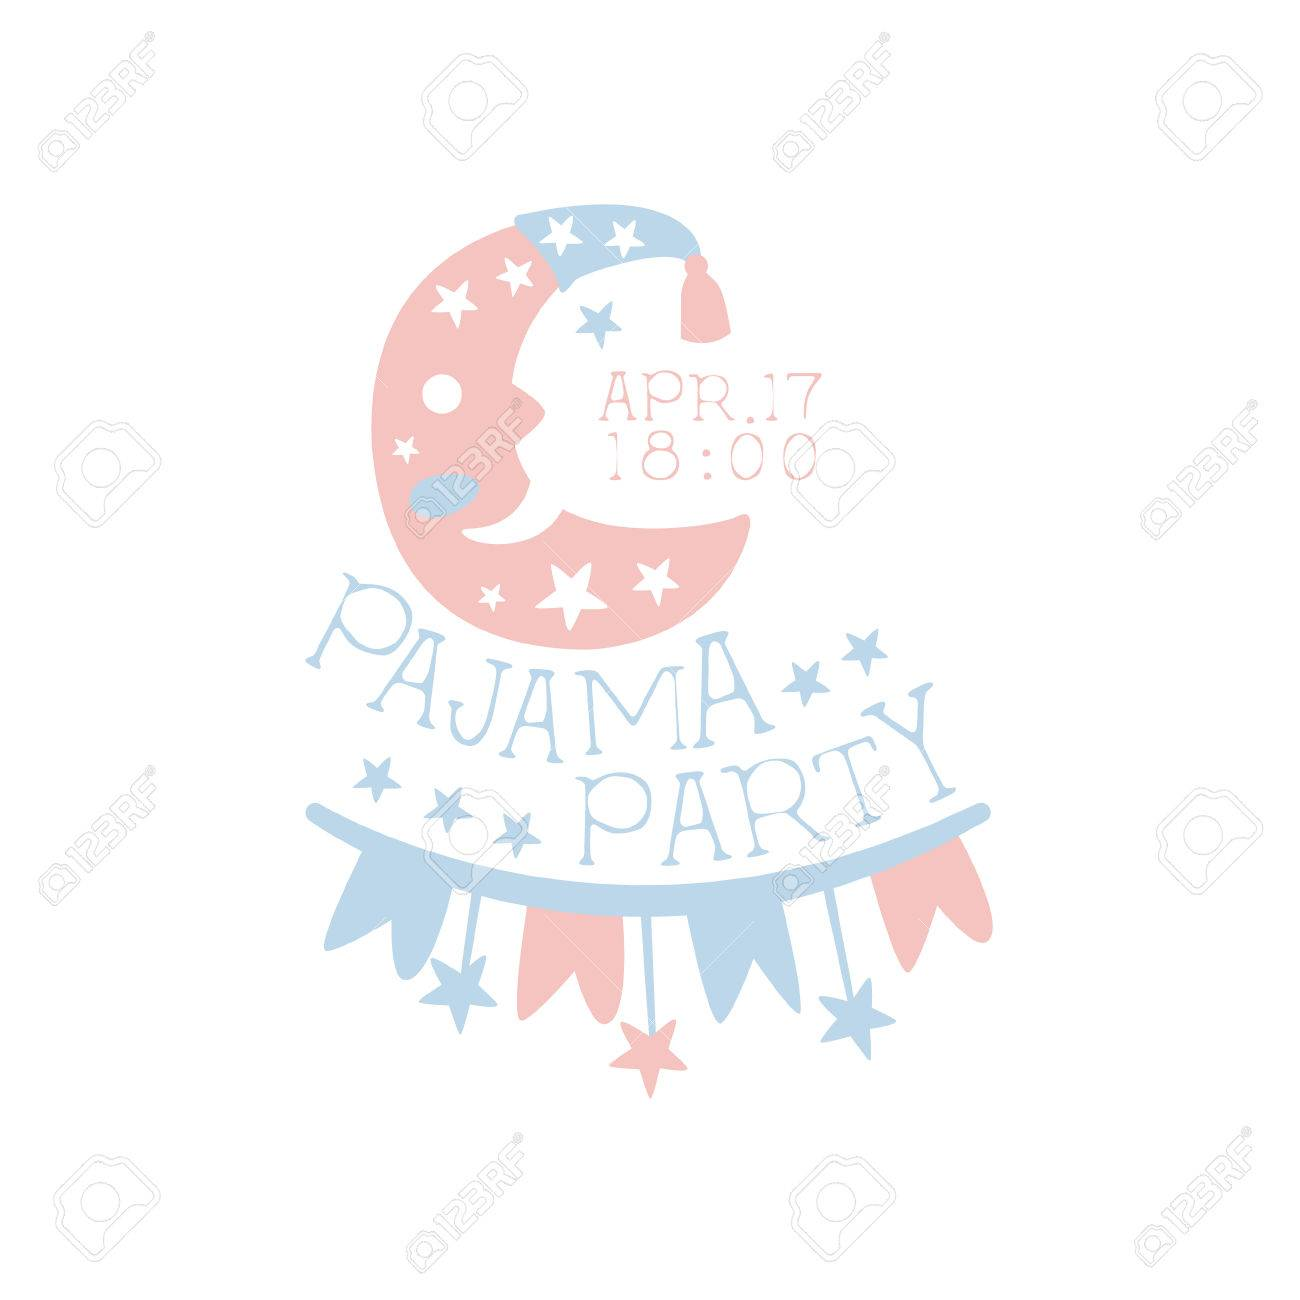 Girly Pajama Party Invitation Card Template With Crescent Inviting ...